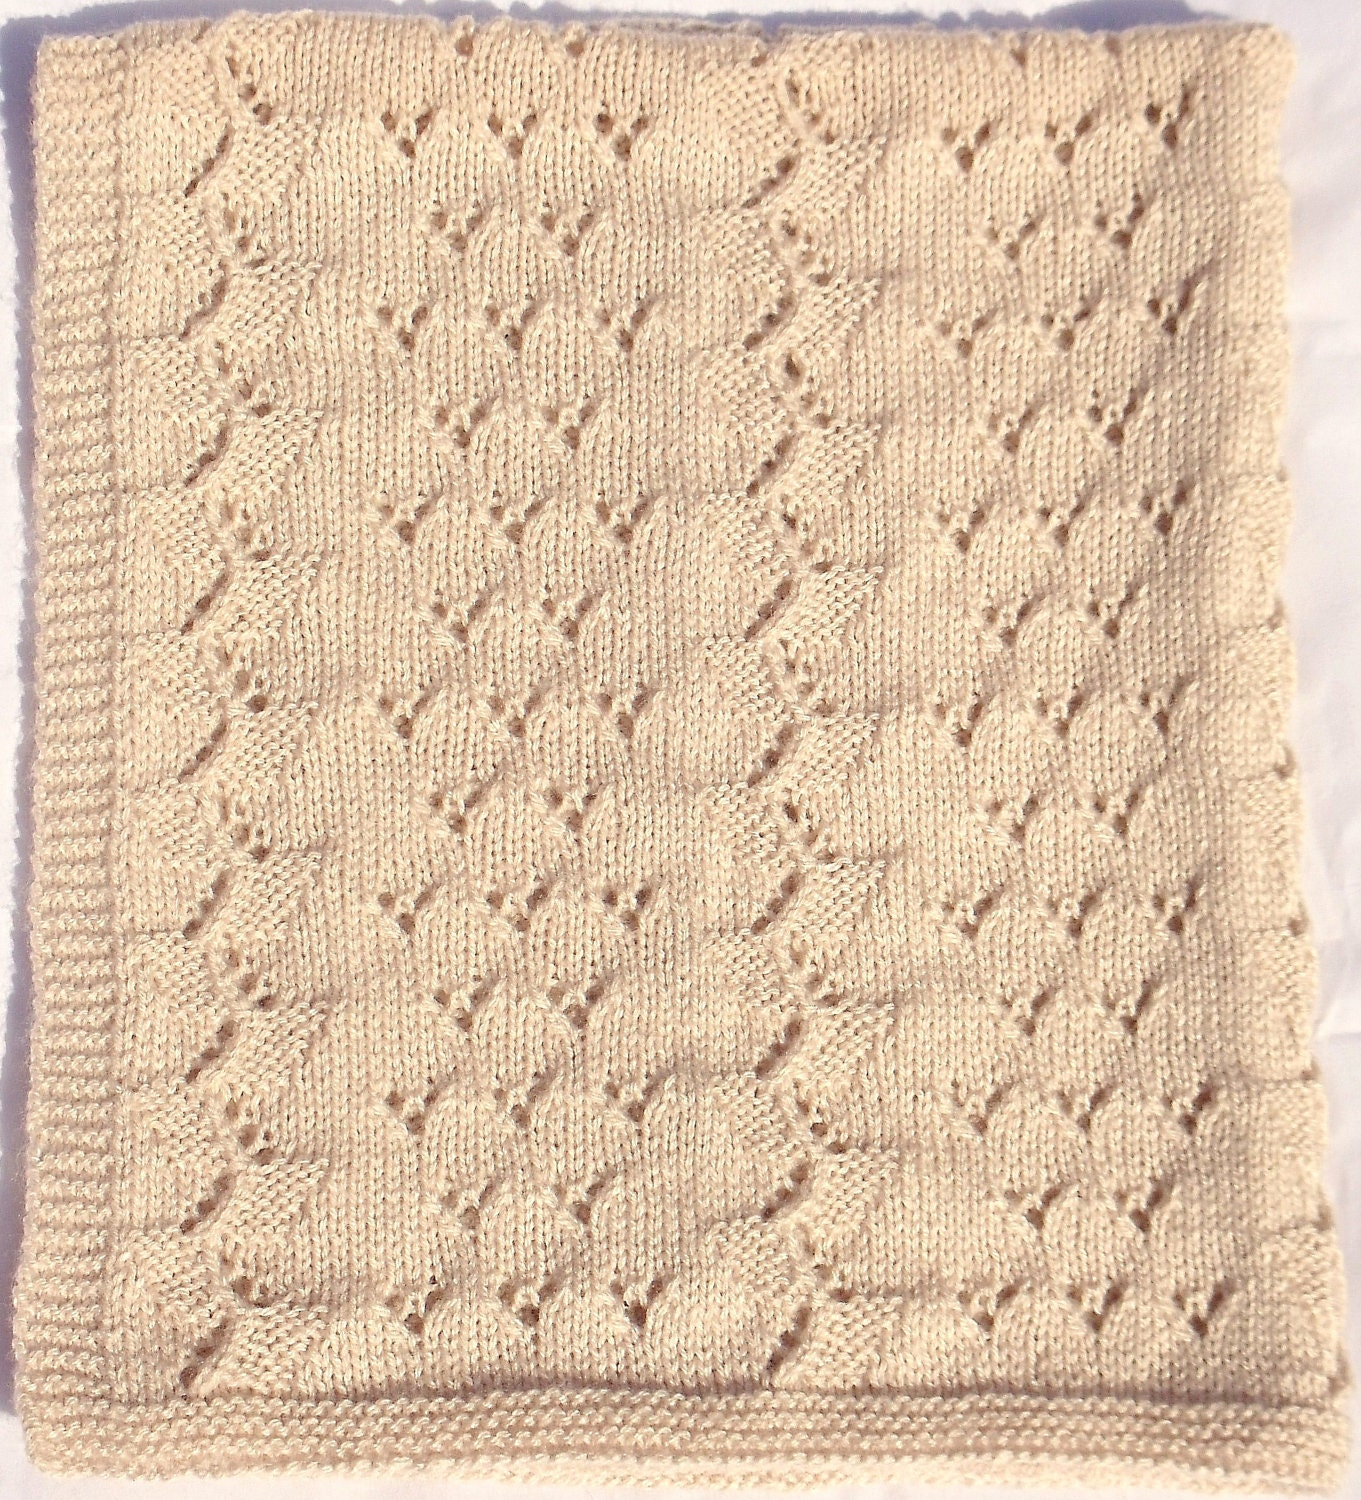 Baby Blanket Knitting Patterns Free Beginners - Knitting Patterns Free